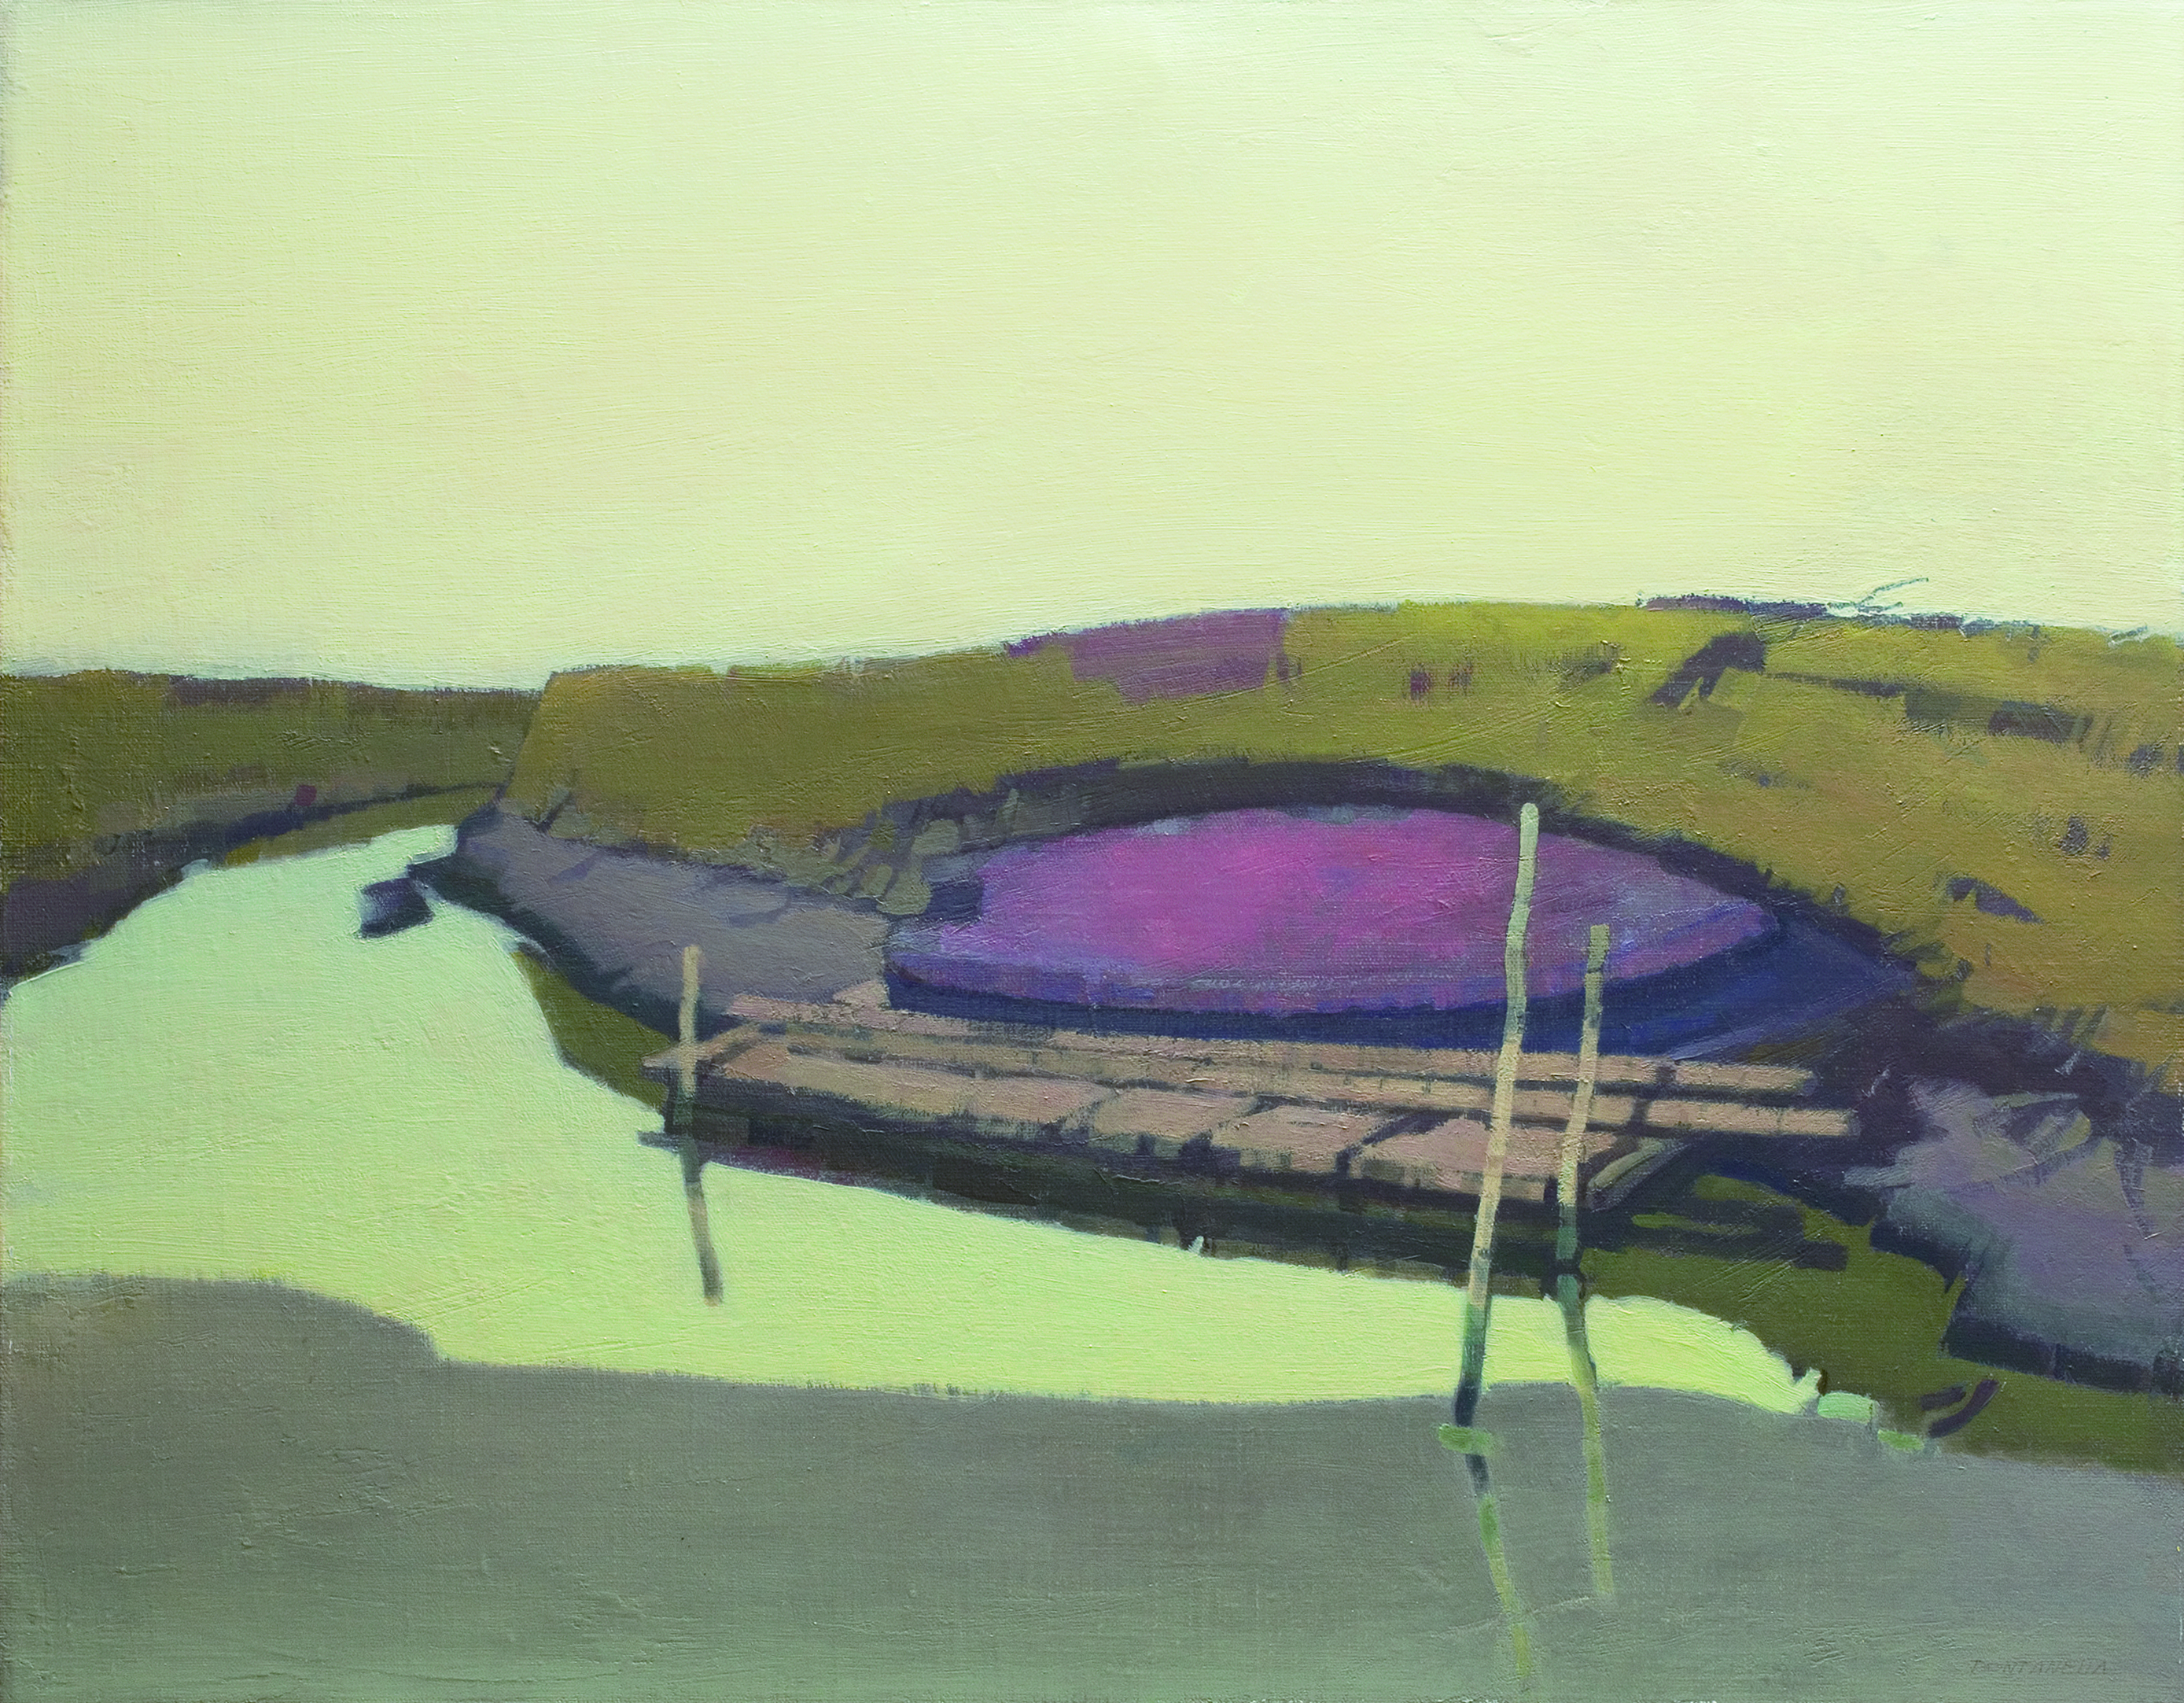 3B_Canale_a_Torcello_55x70_cmyk